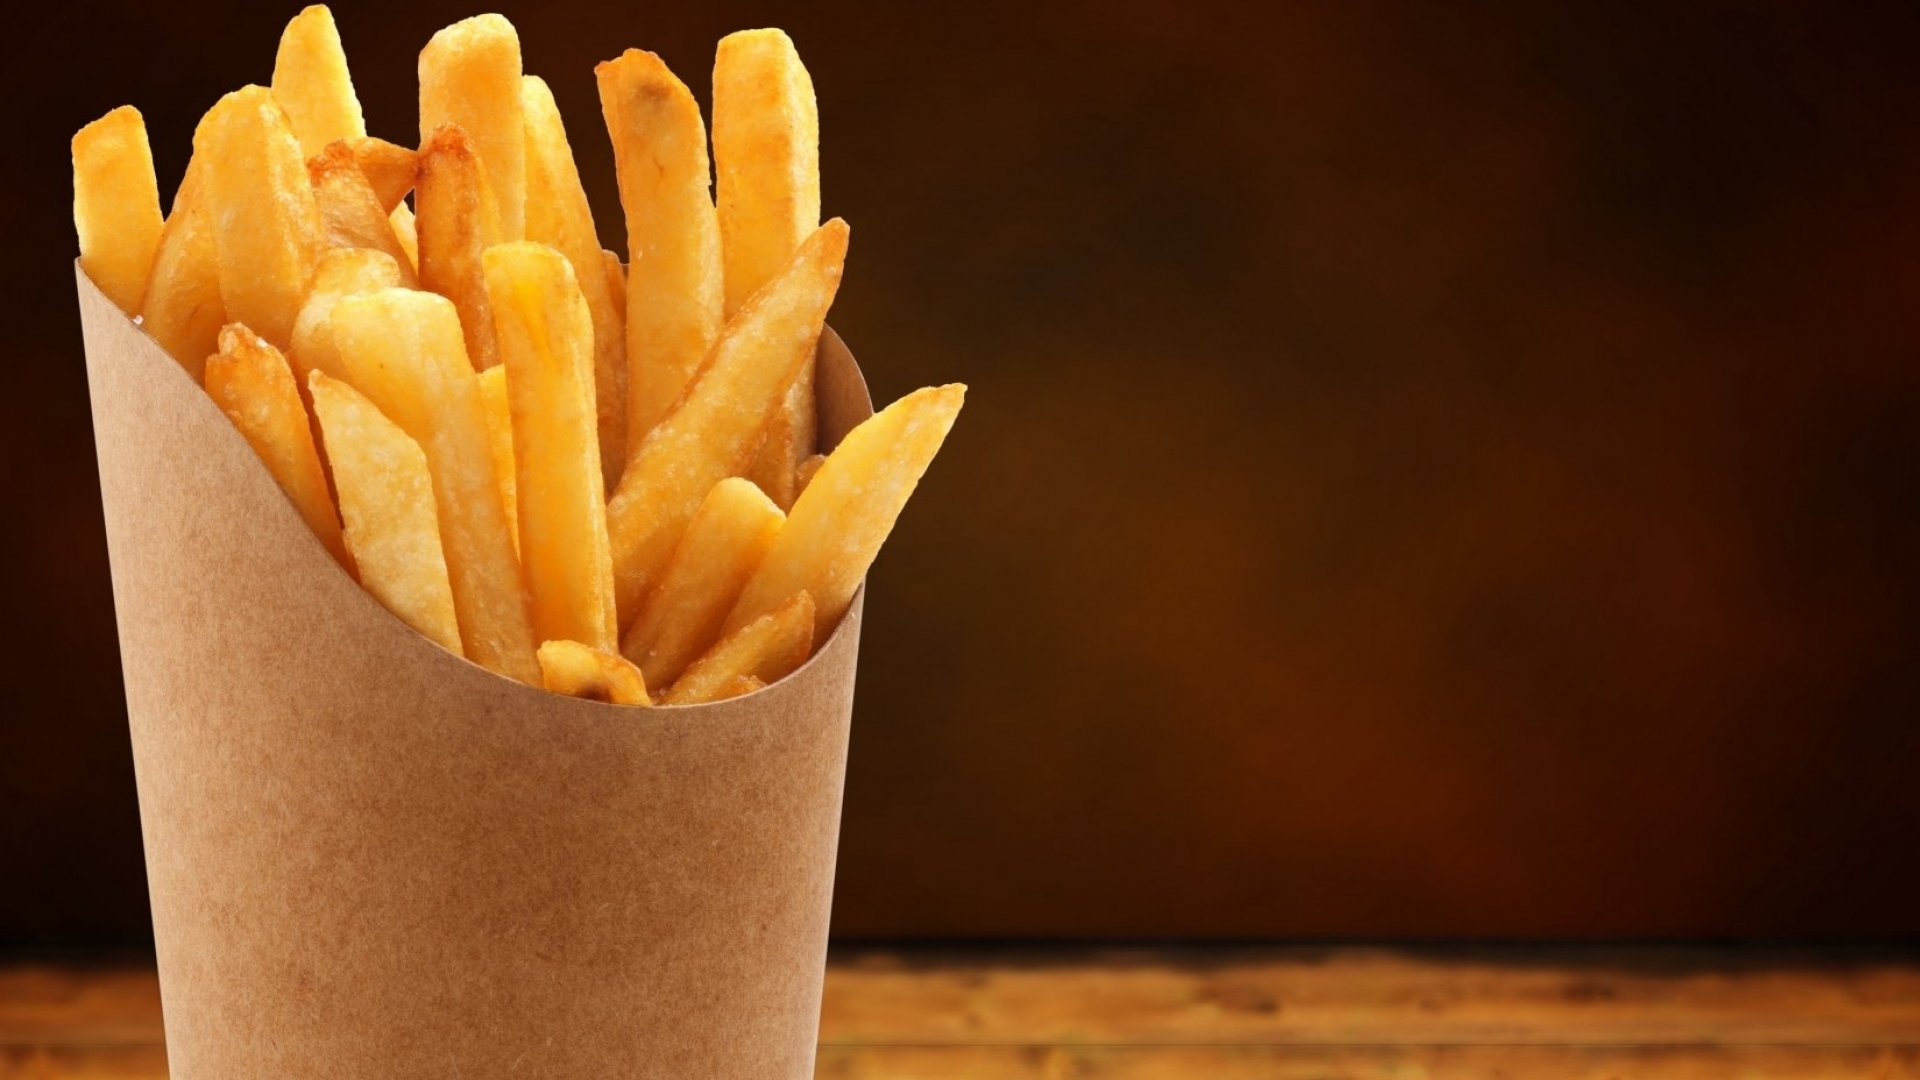 And what would you pair those fries with?